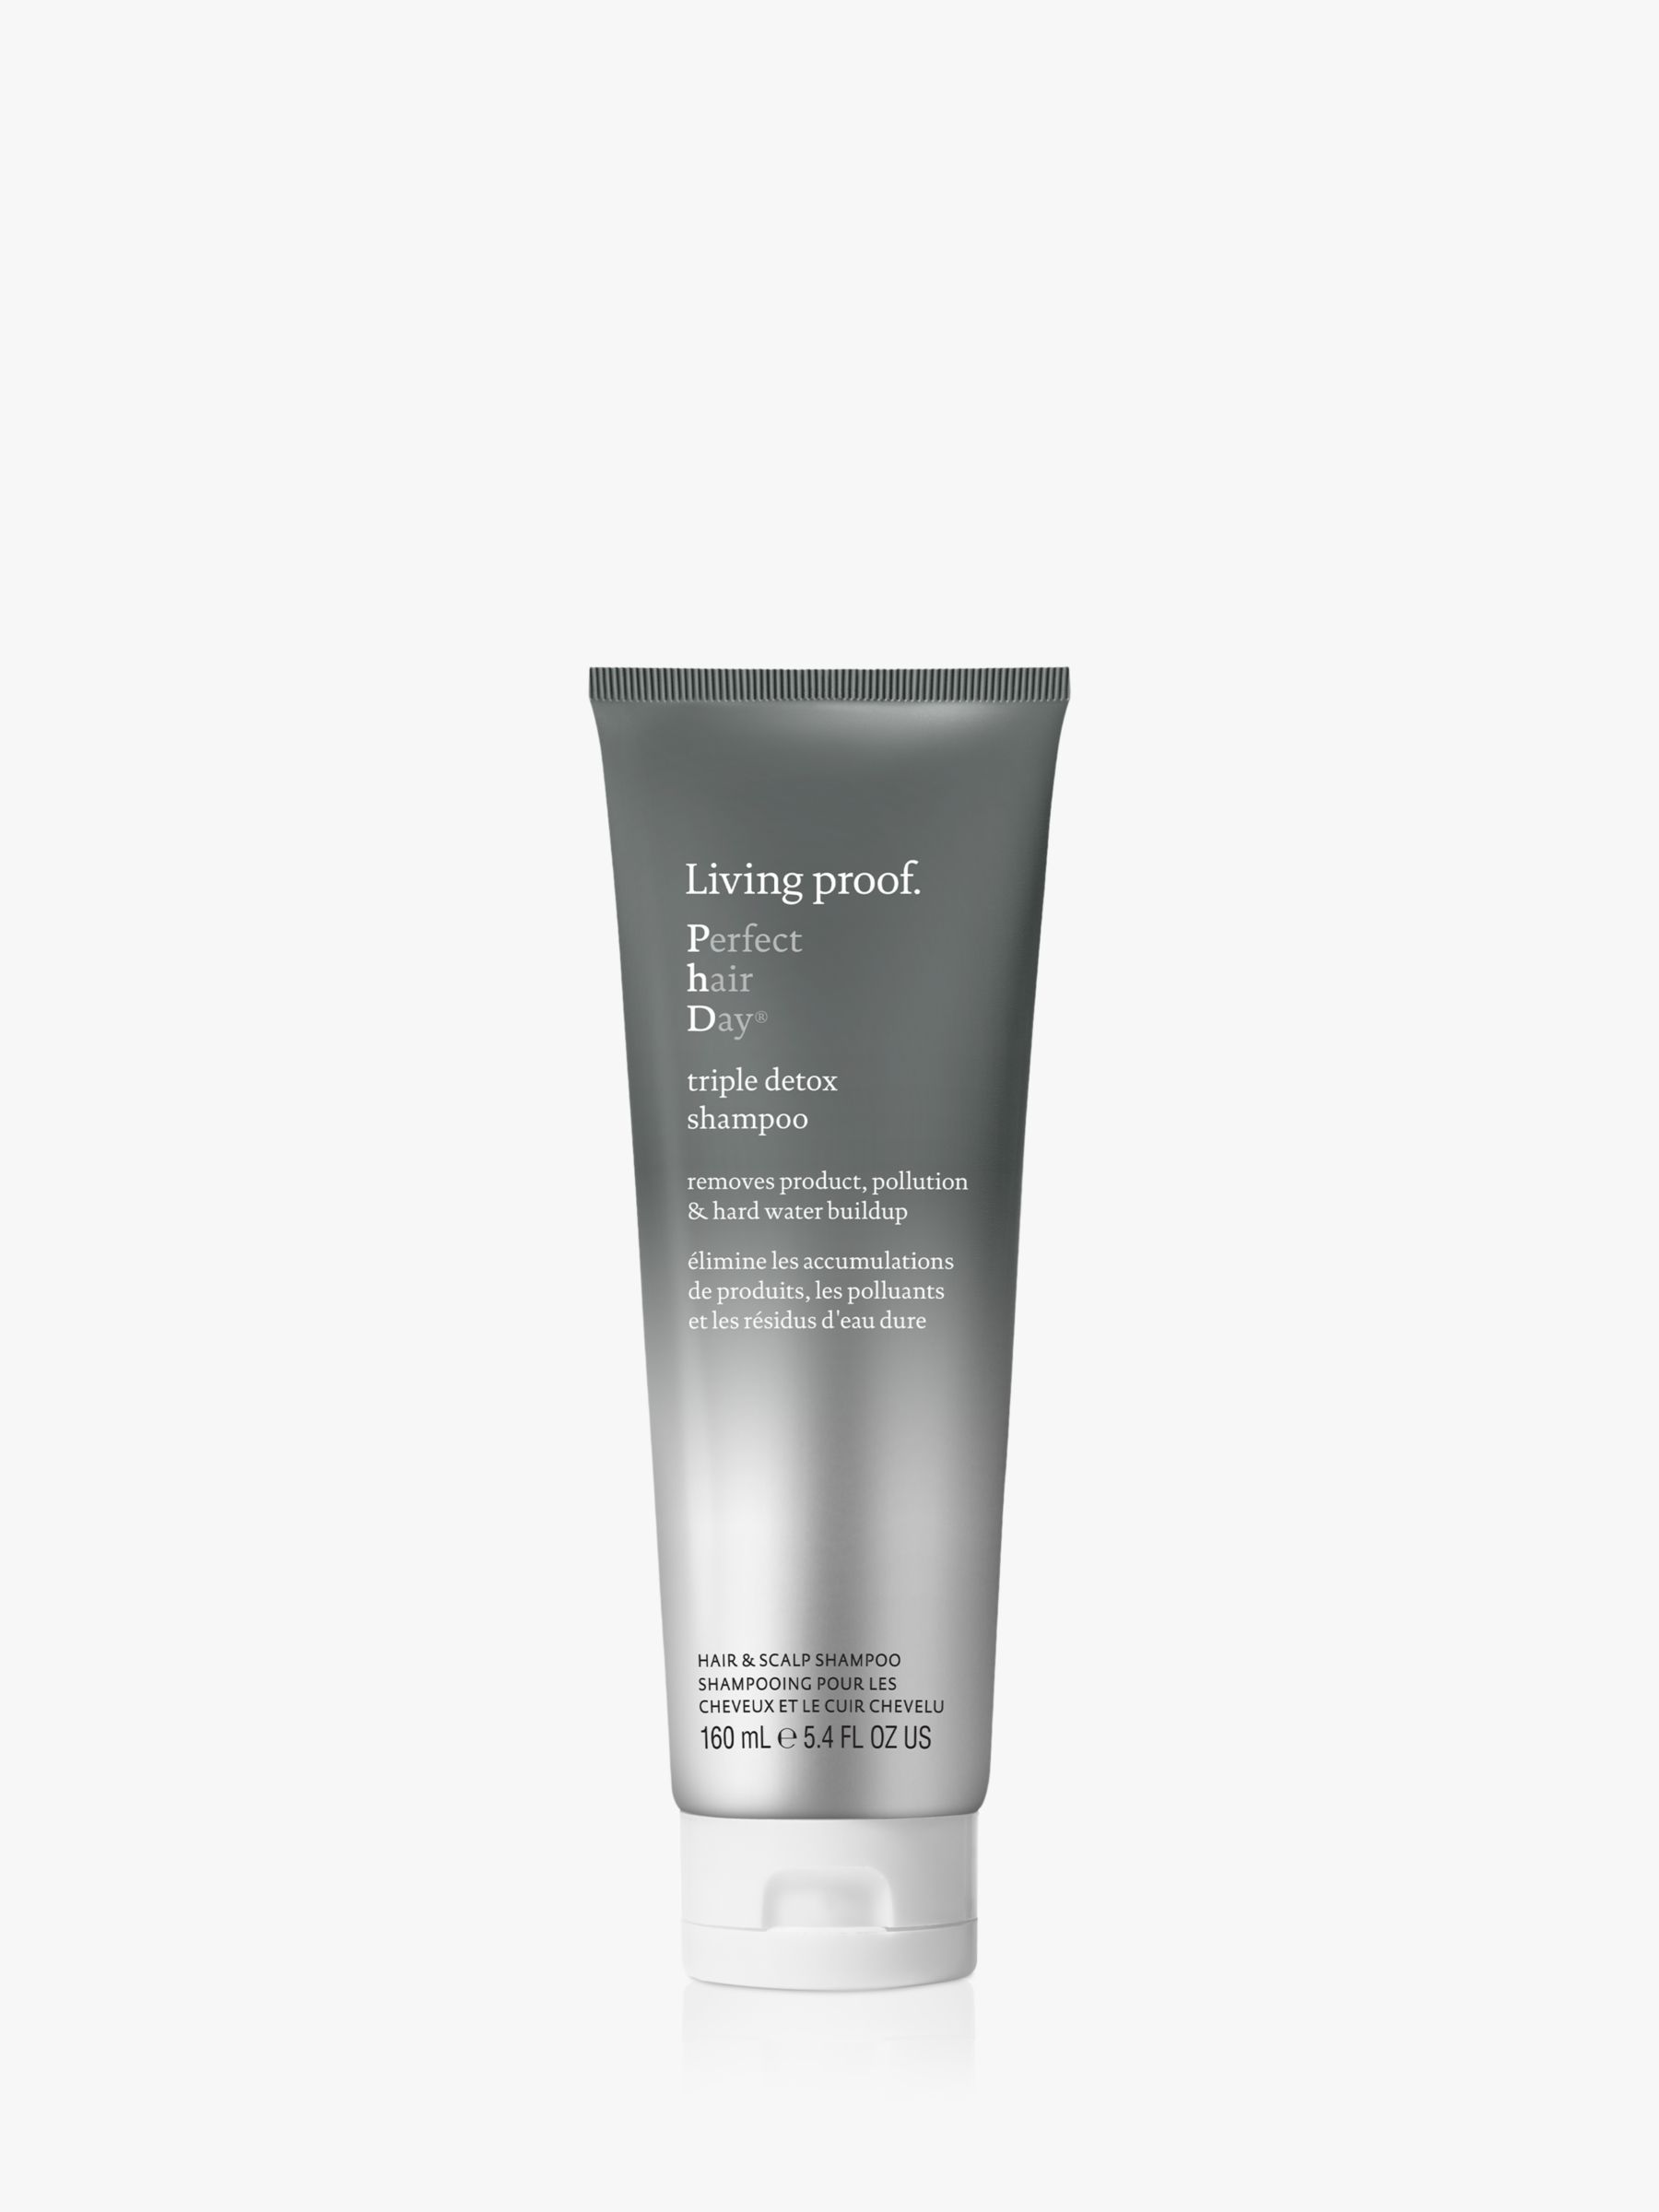 Living Proof Living Proof Perfect Hair Day Triple Detox Shampoo, 160ml